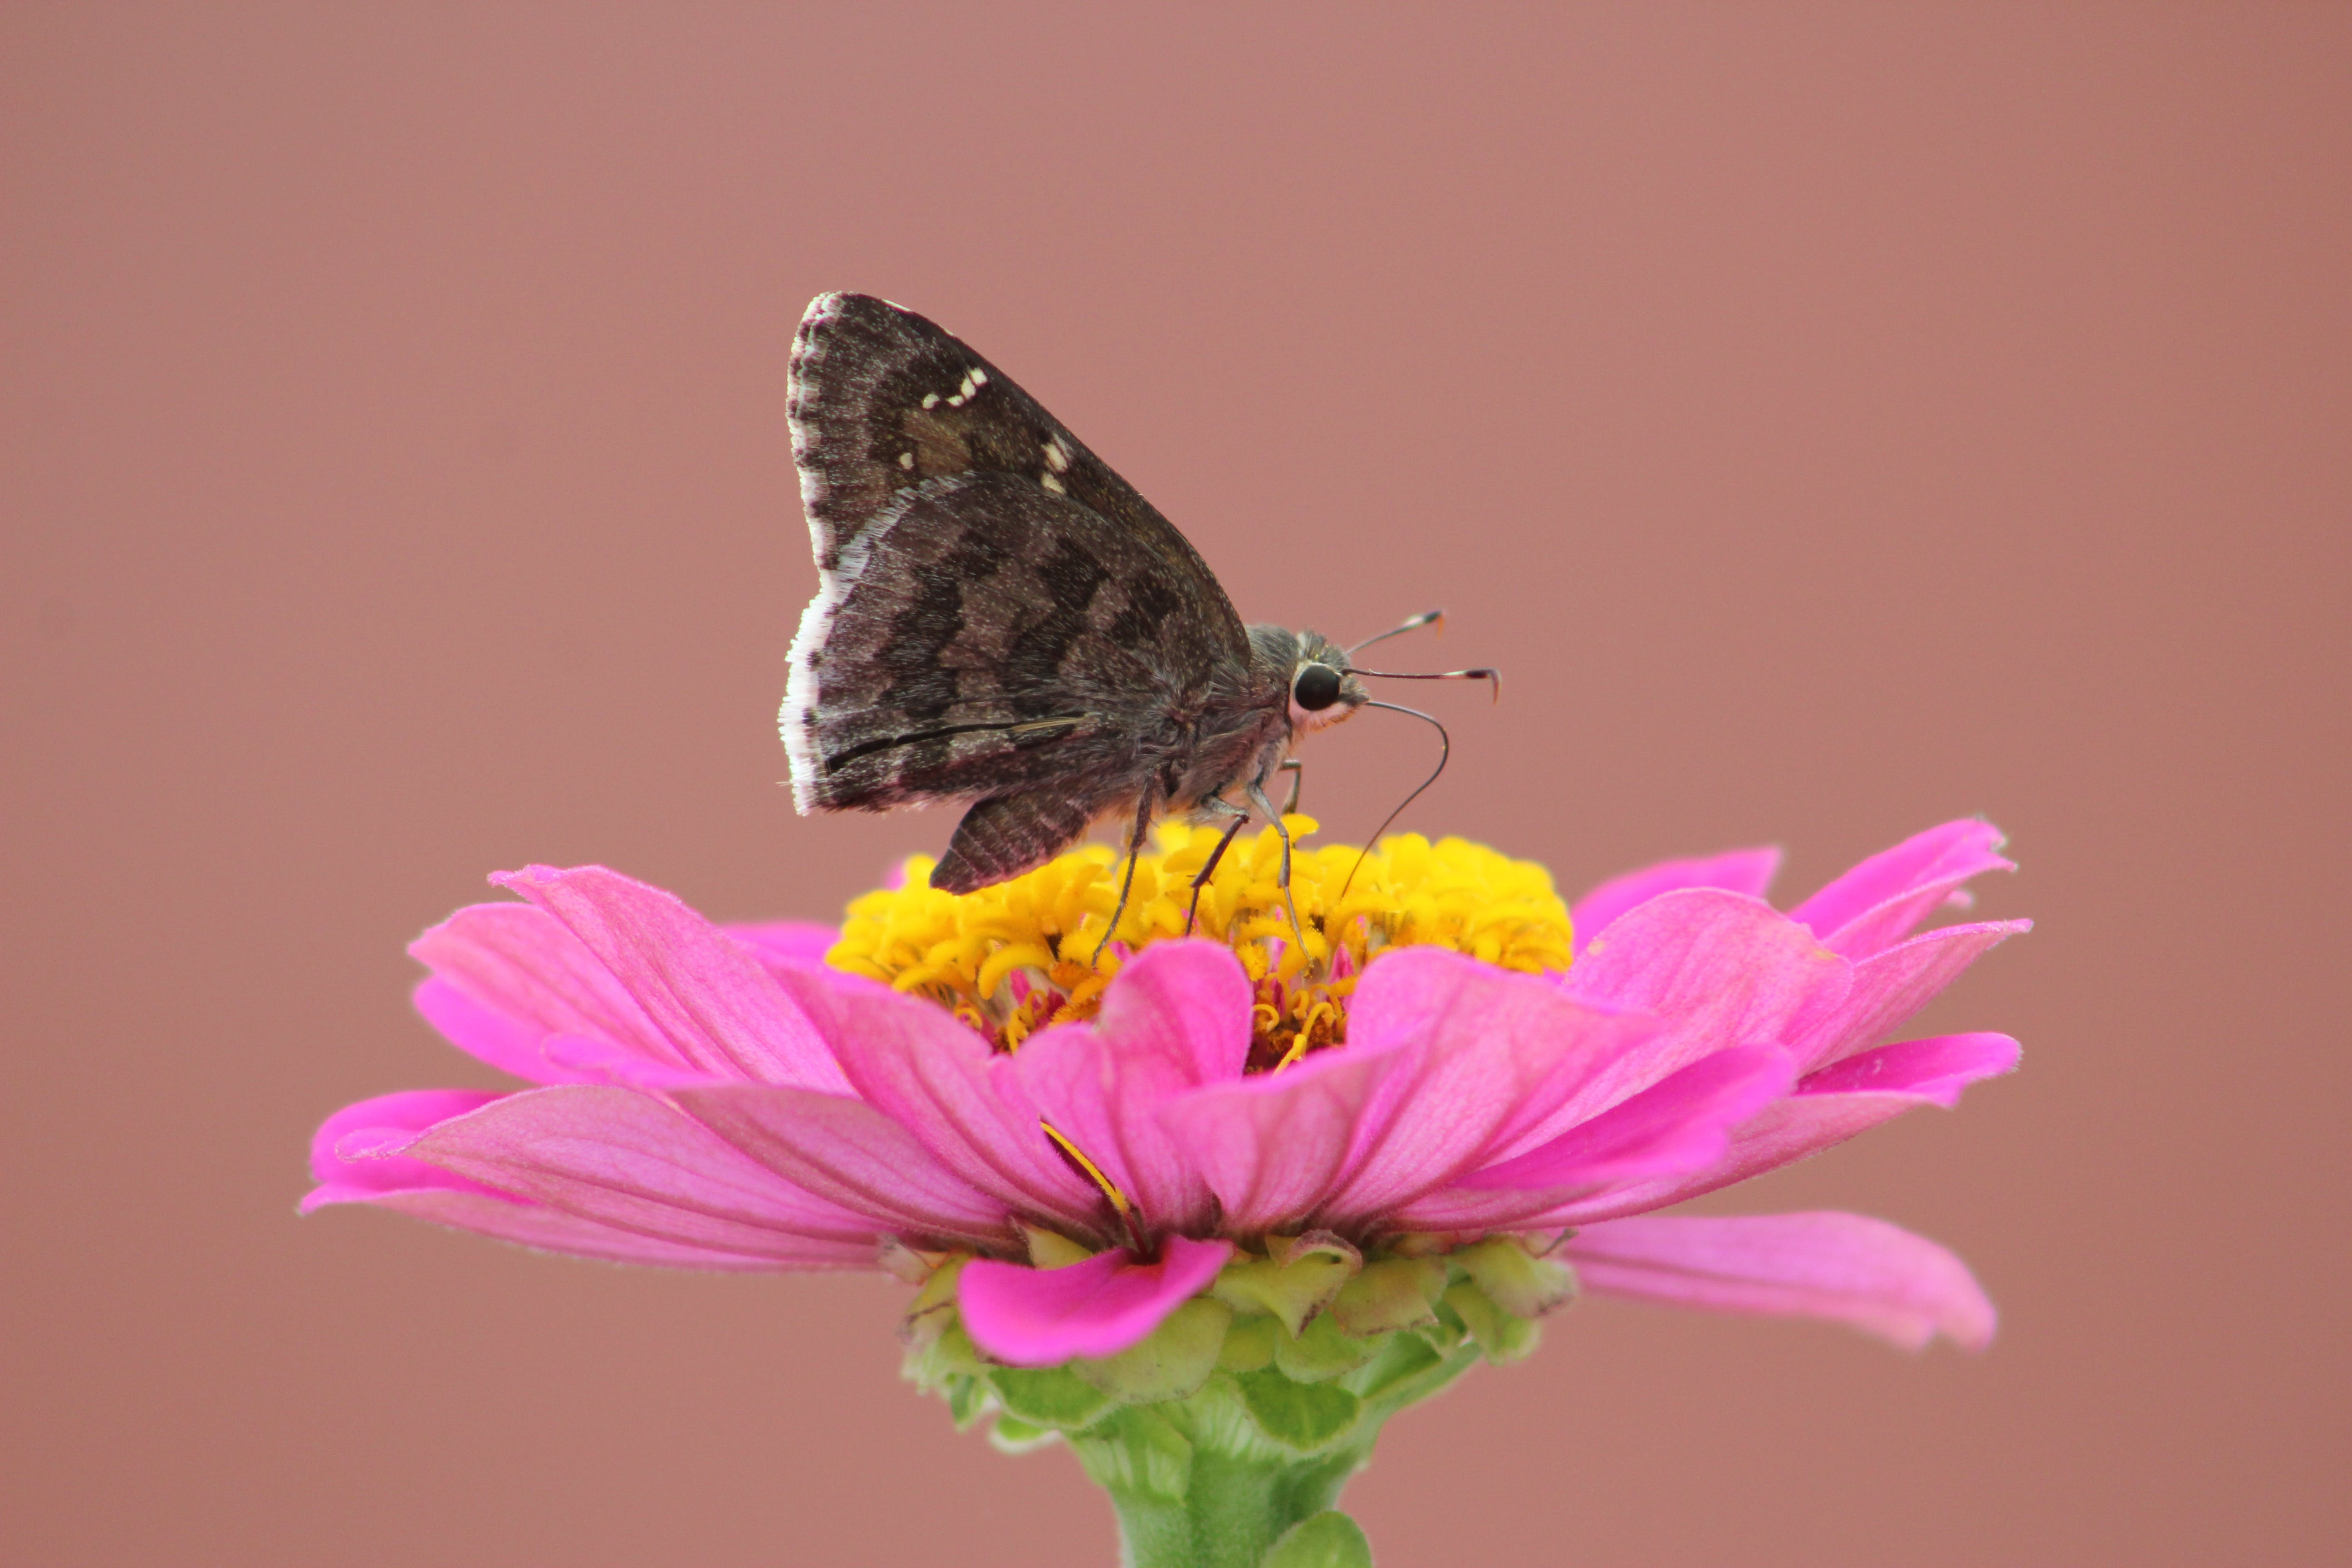 Free stock photo of butterfly on a flower, moth, nature photography